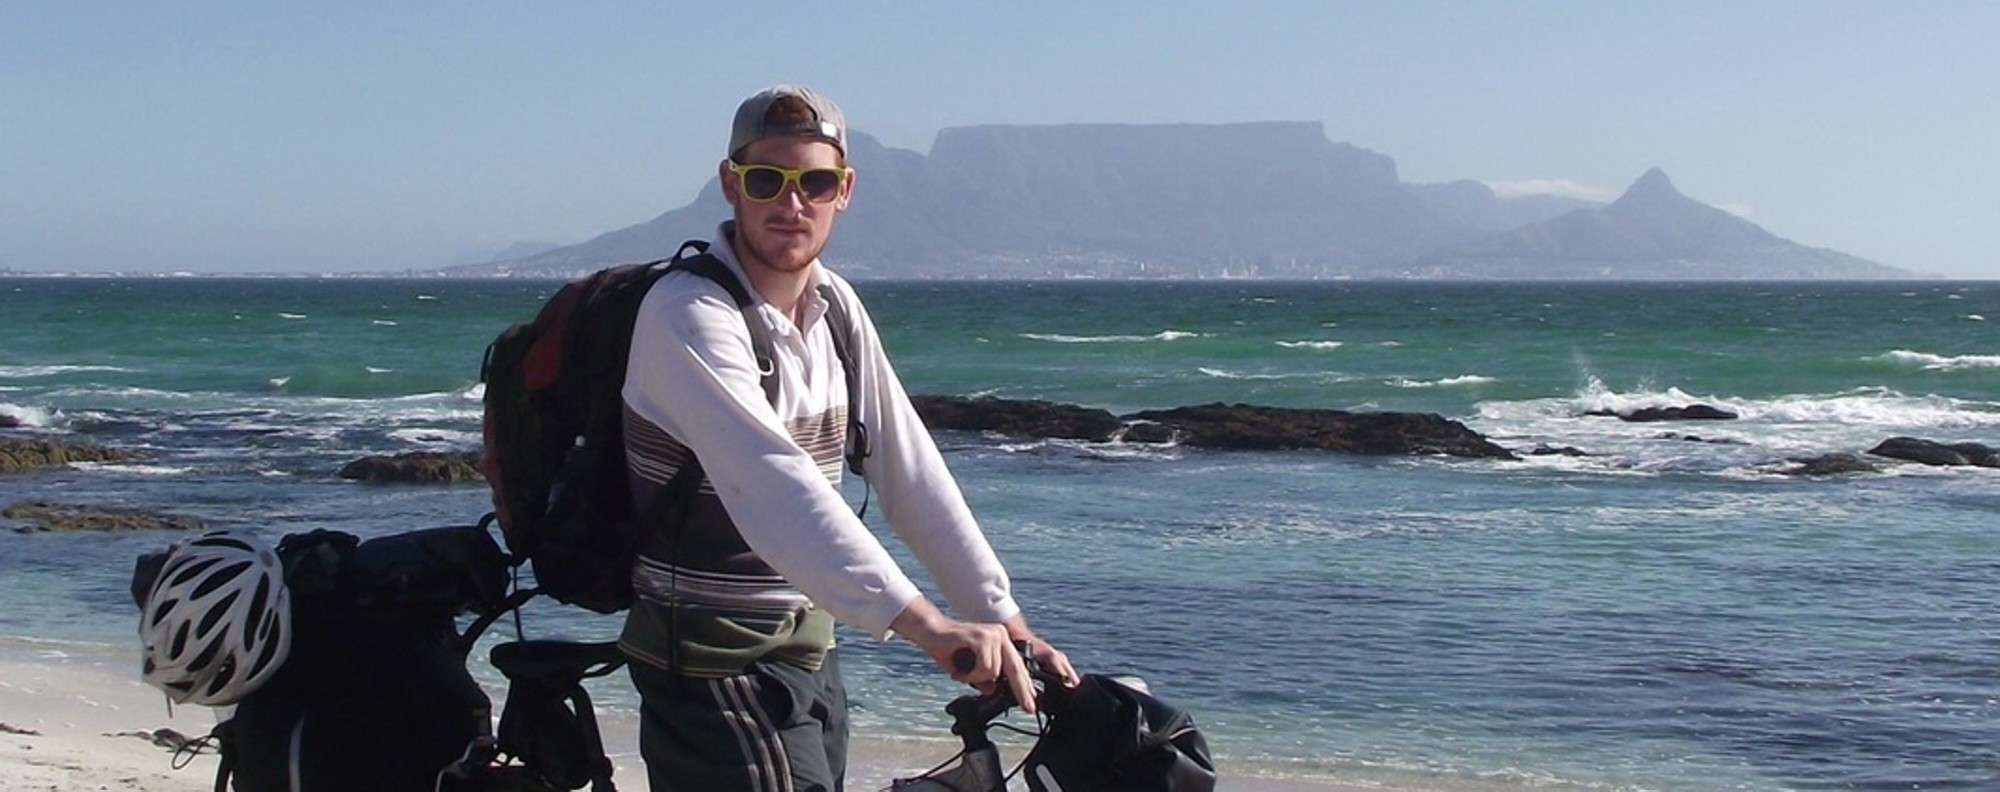 Rory Mackay setting off on his cycling adventure in Africa.